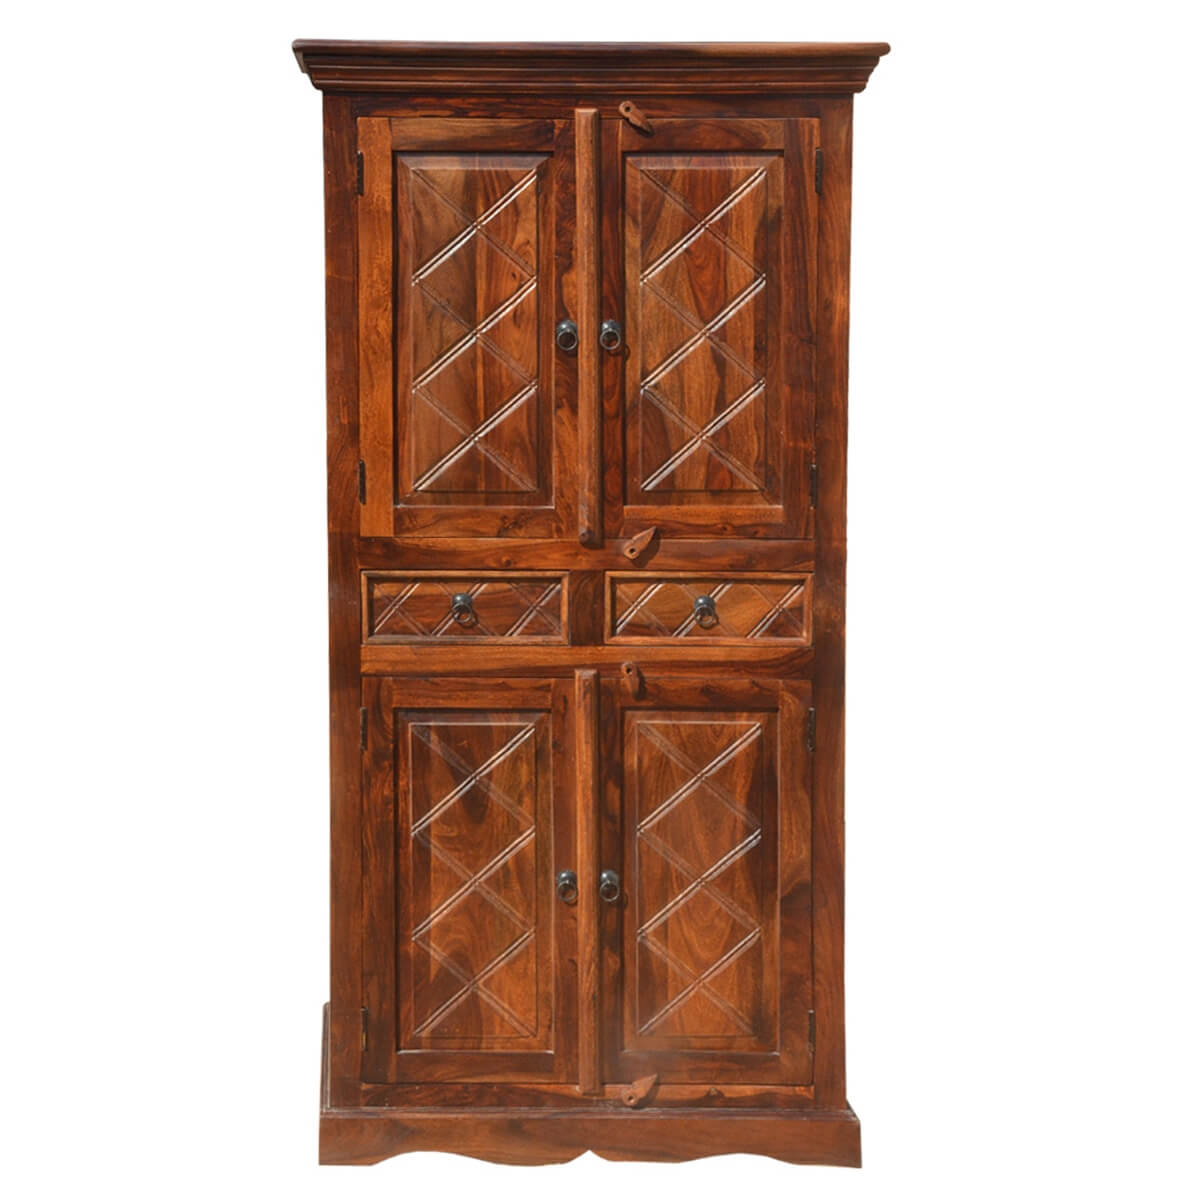 Rustic wood 2 storage drawers cupboard wardrobe armoire for Cupboard and drawers